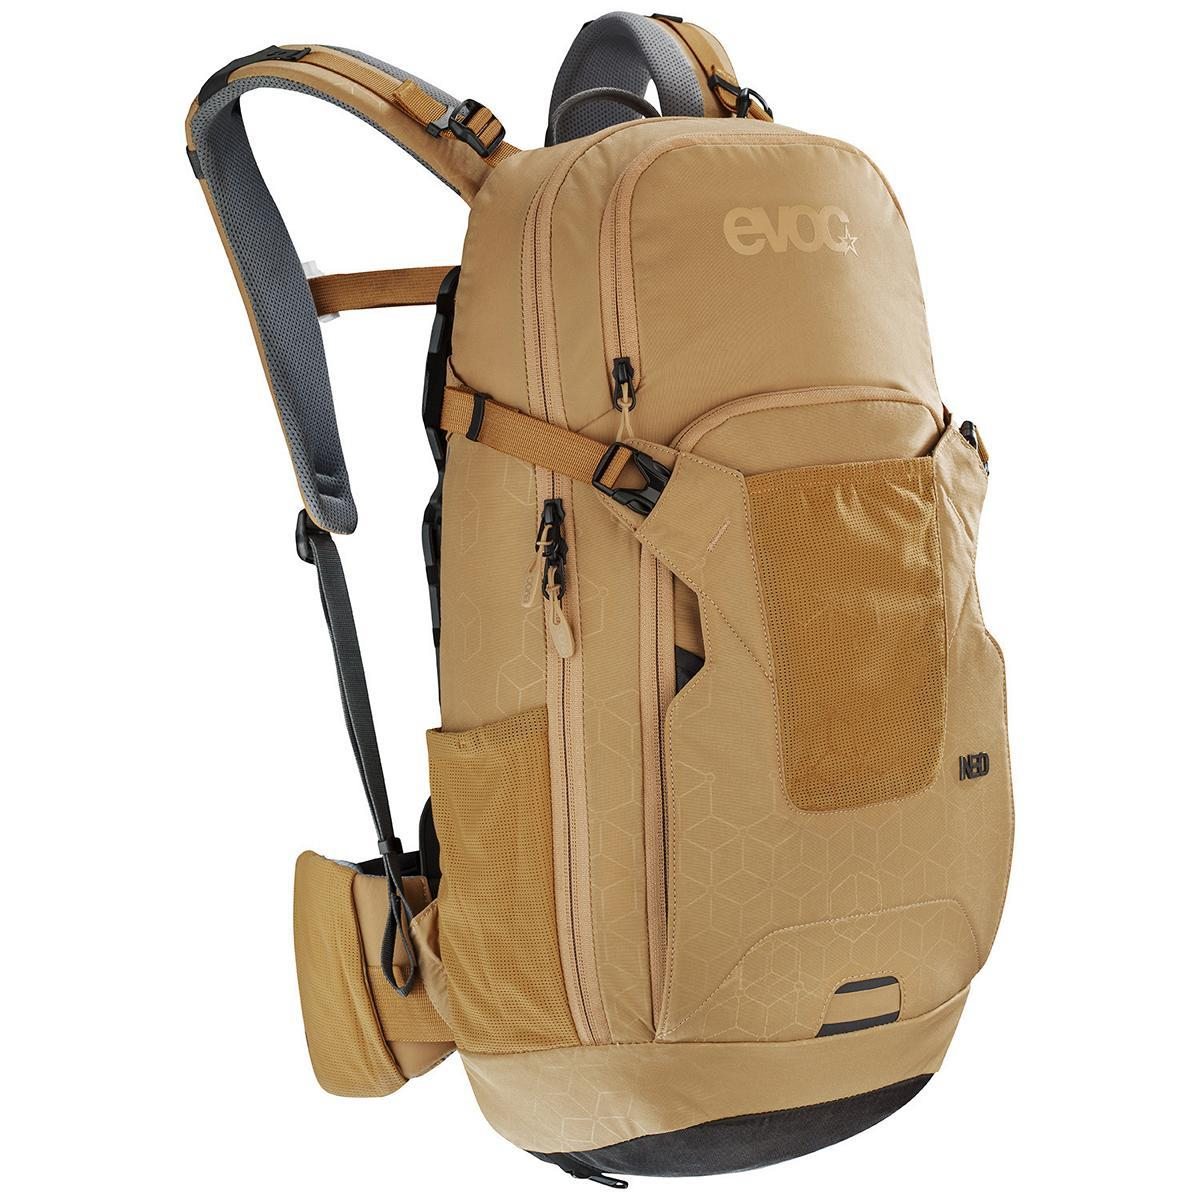 Backpack Neo 16 lt gold size S/M